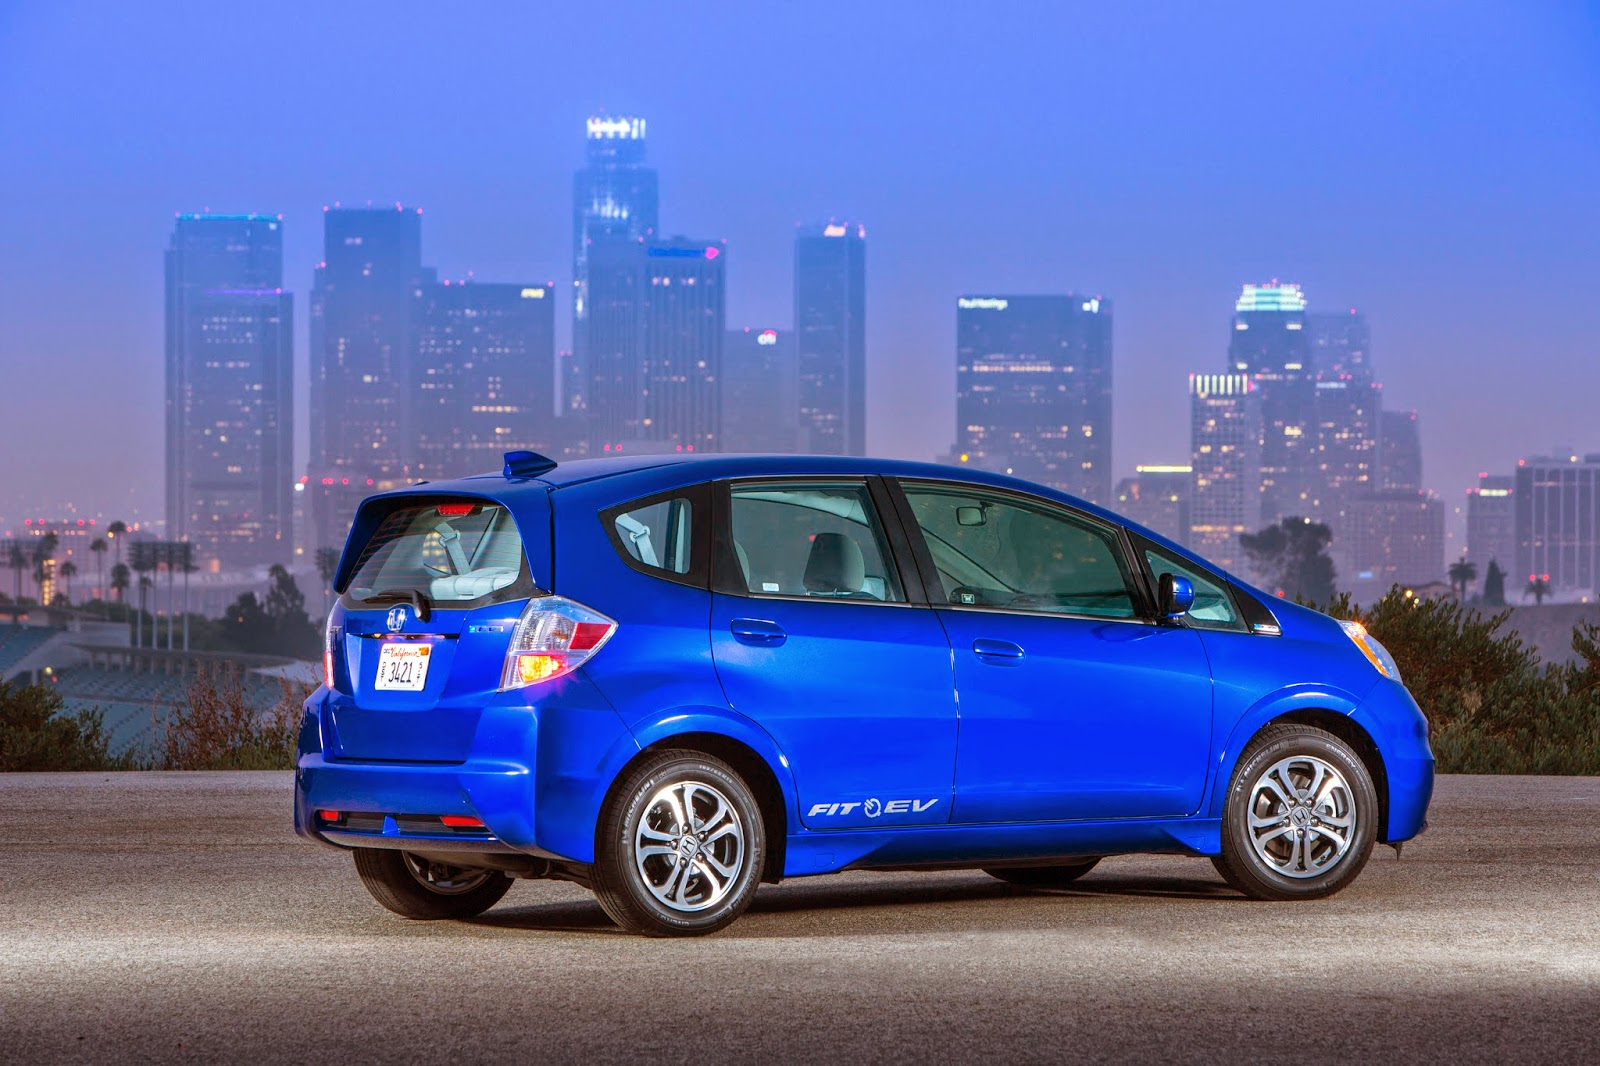 Honda honda fit ev range : Why You Should Want A Honda Fit EV And Who Will Make You Crazy ...